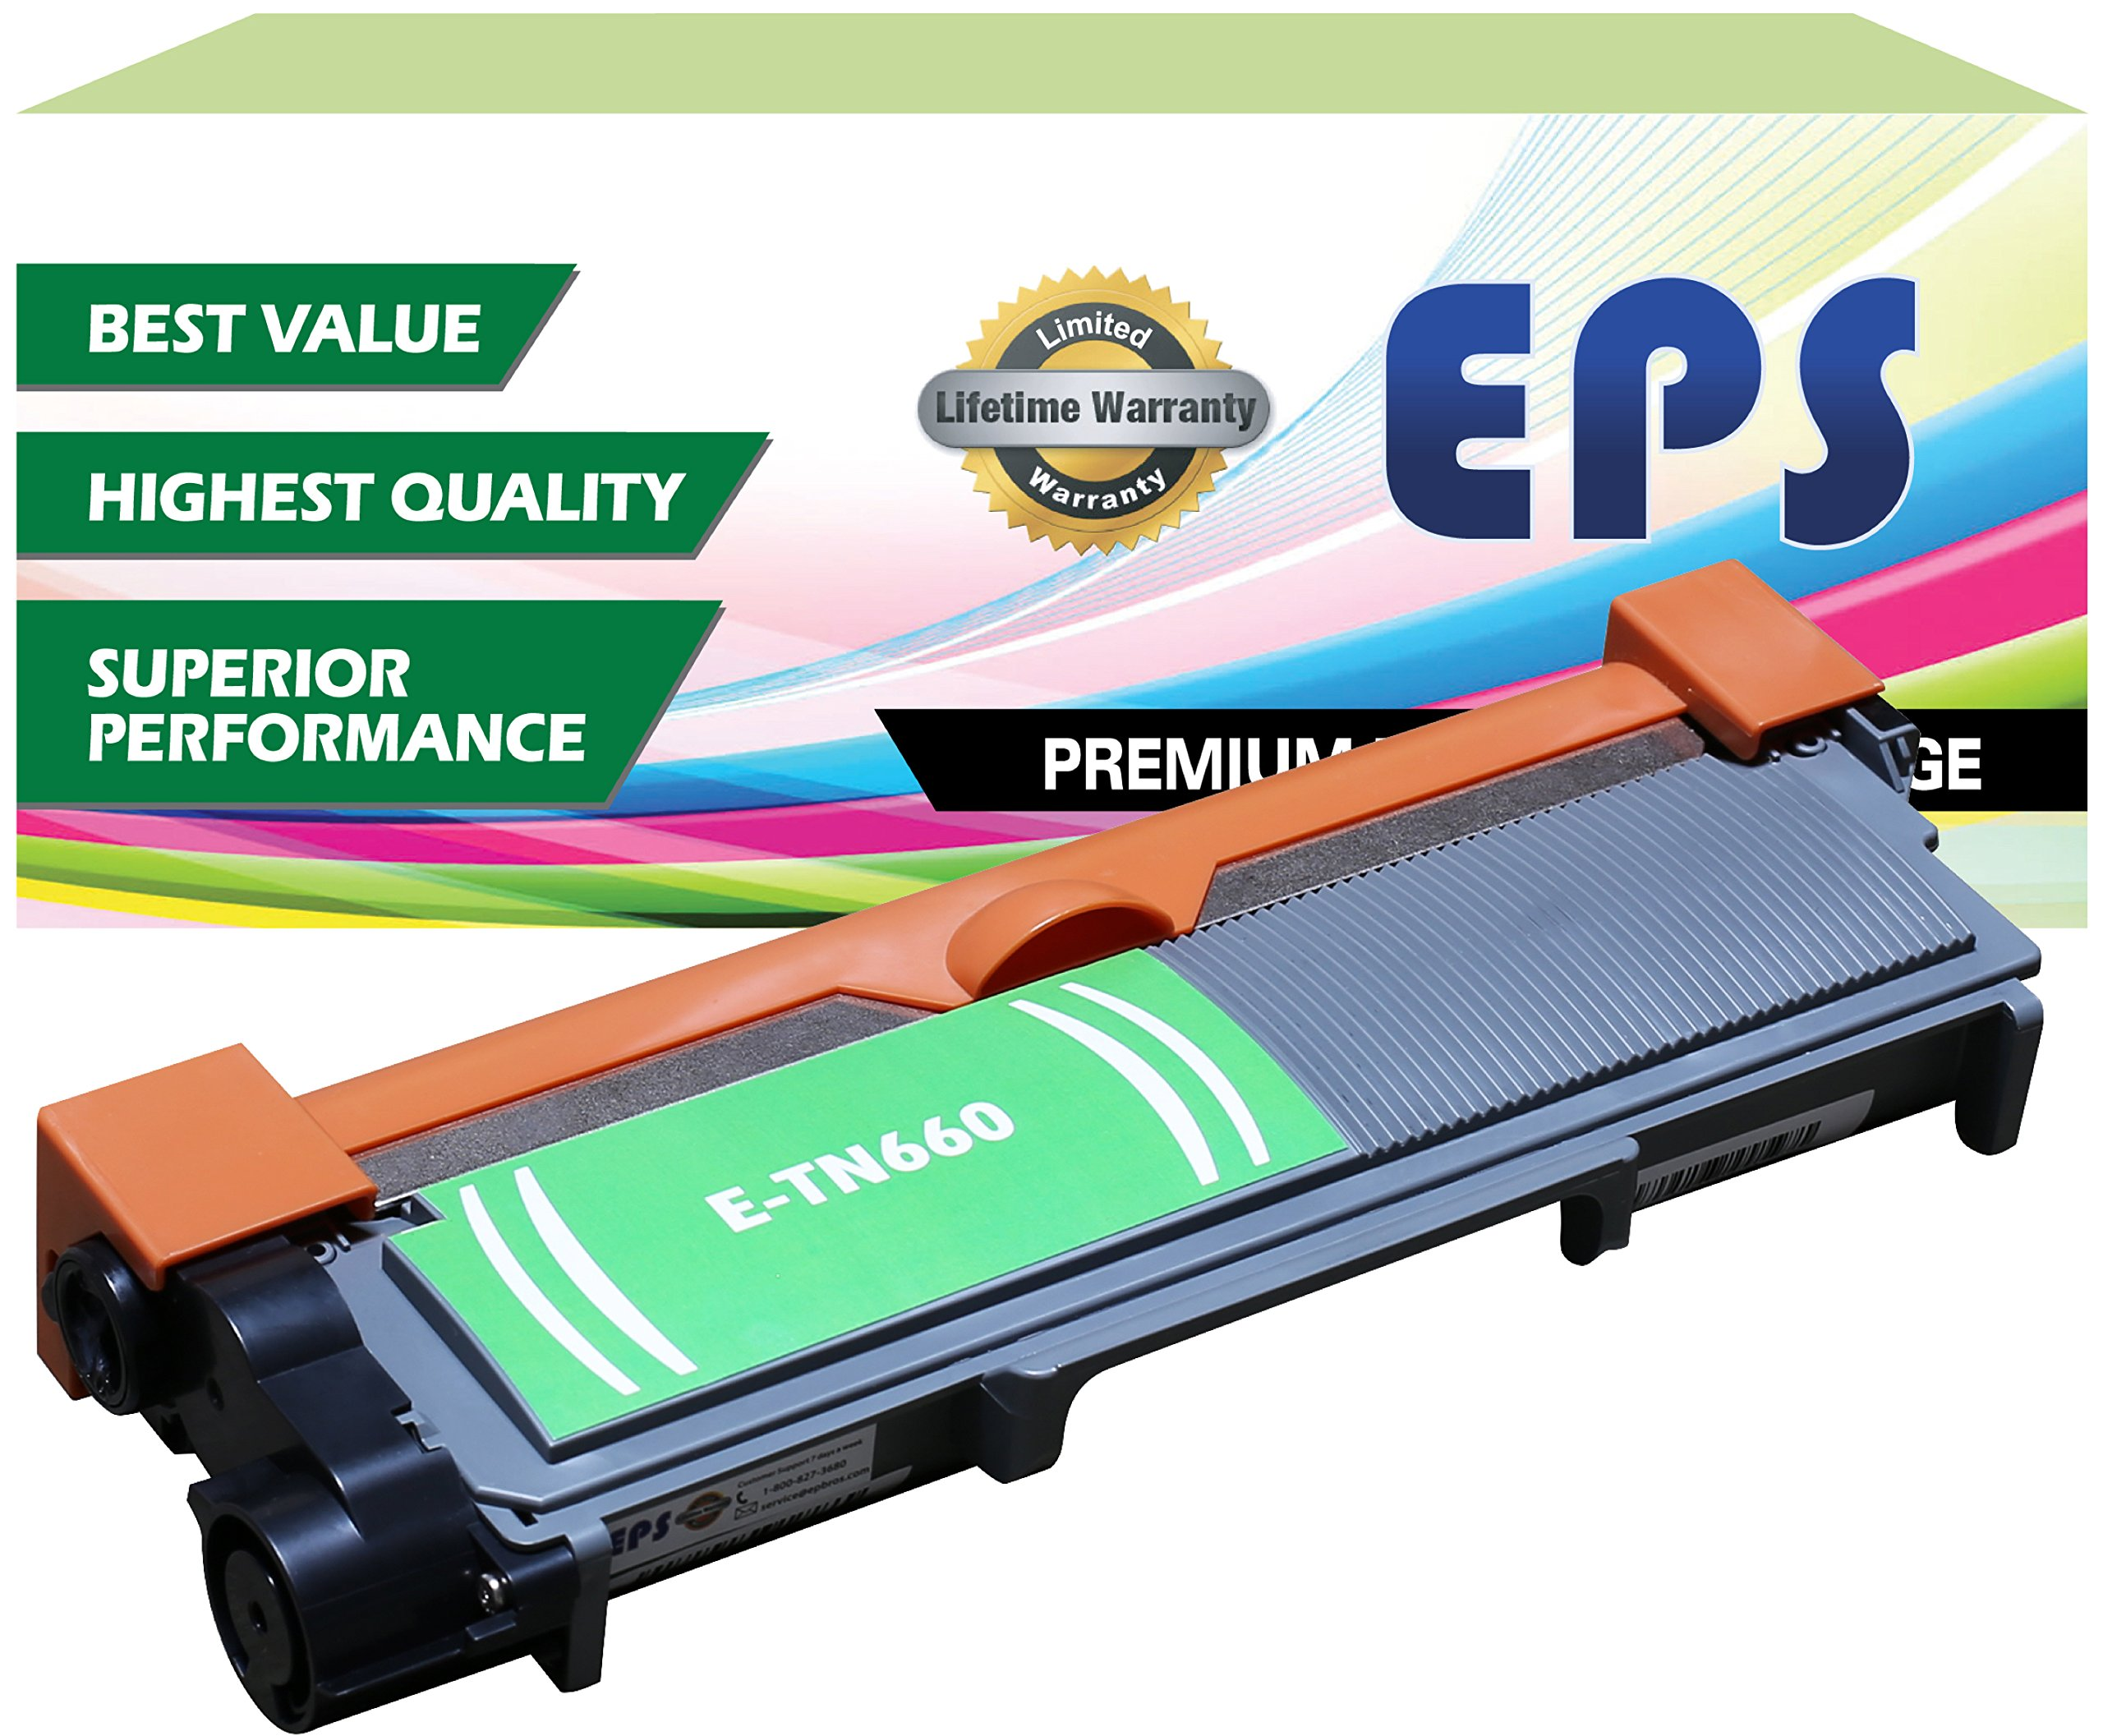 EPS Compatible Replacement Toner Cartridge for Brother TN660 TN630, High Yield (2,600 Yield) - Black